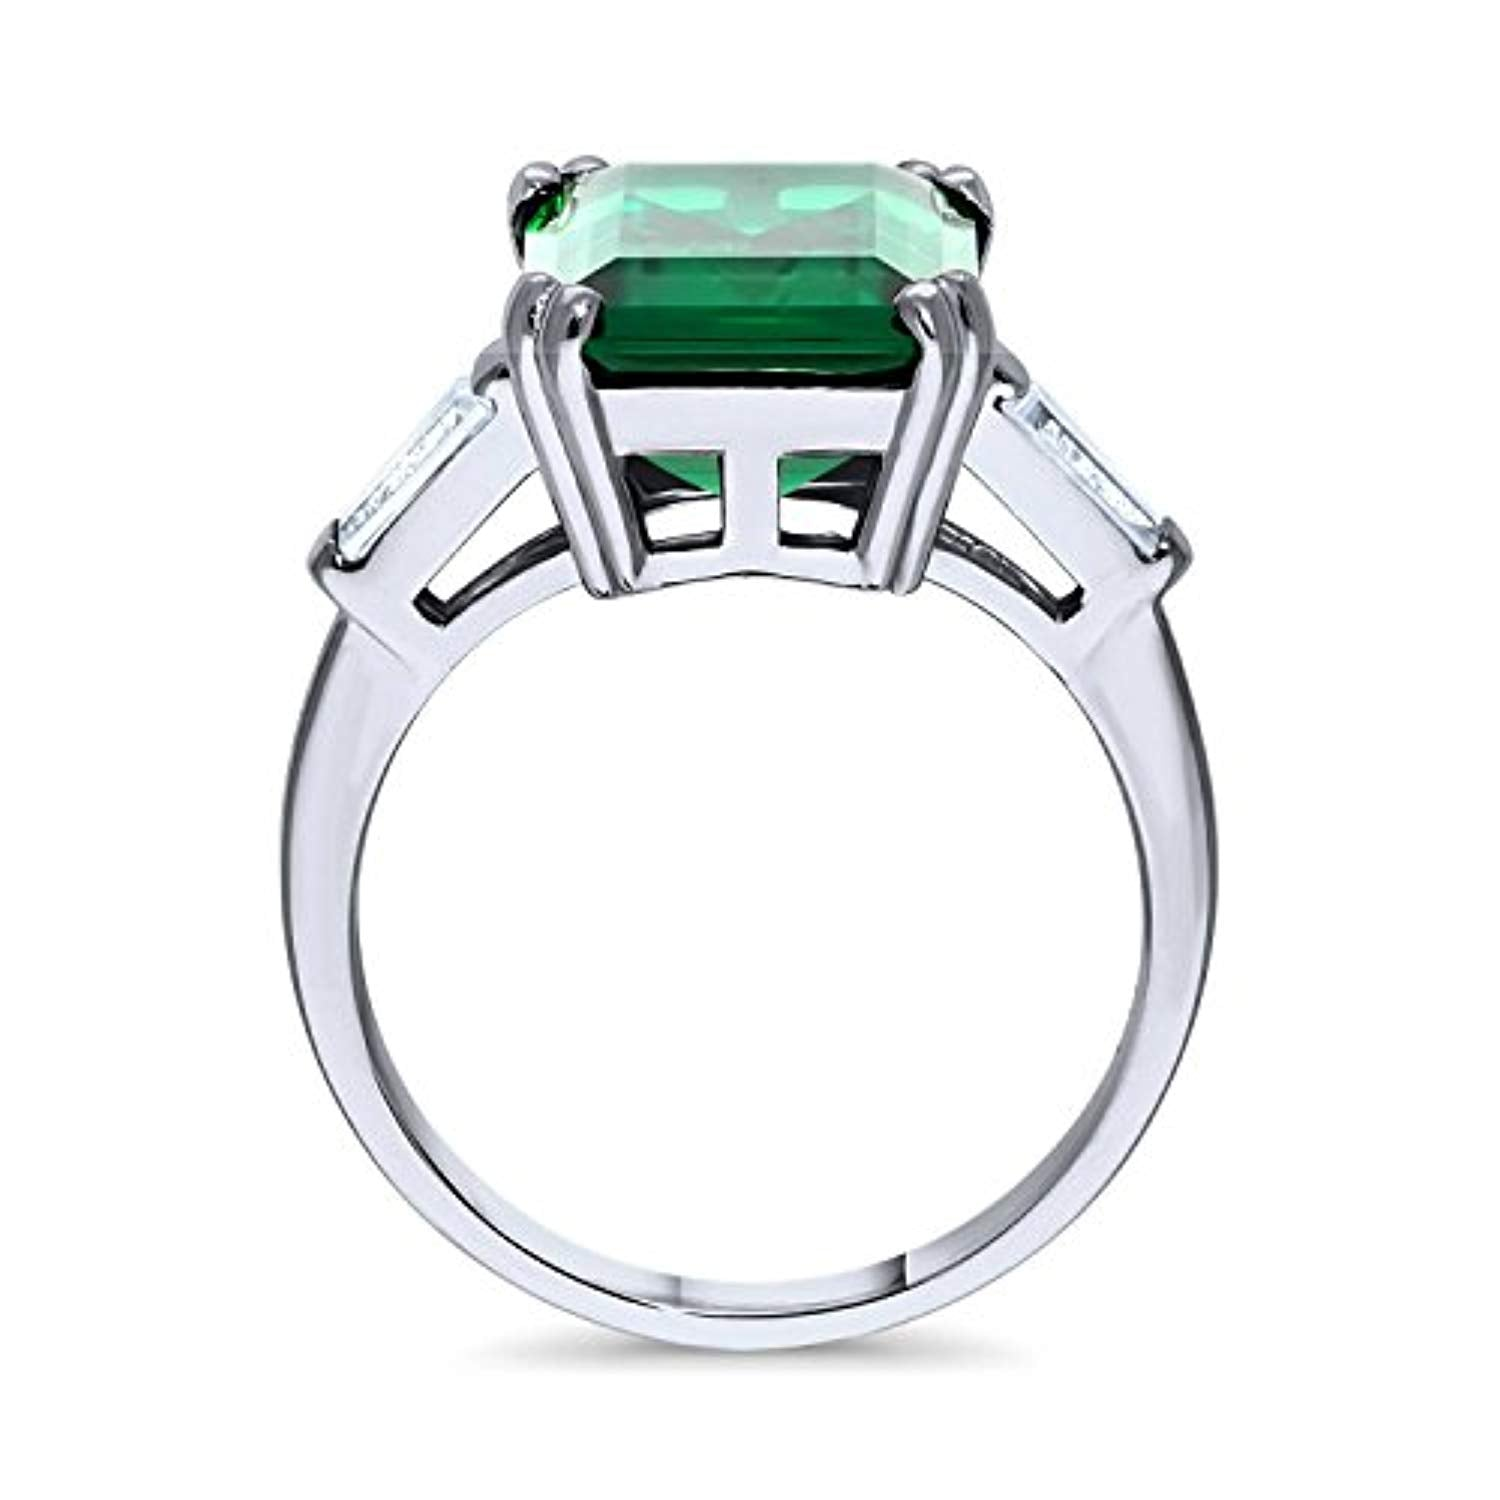 Rhodium Plated Sterling Silver Emerald Cut Cubic Zirconia CZ Statement Solitaire Cocktail Fashion Right Hand Ring